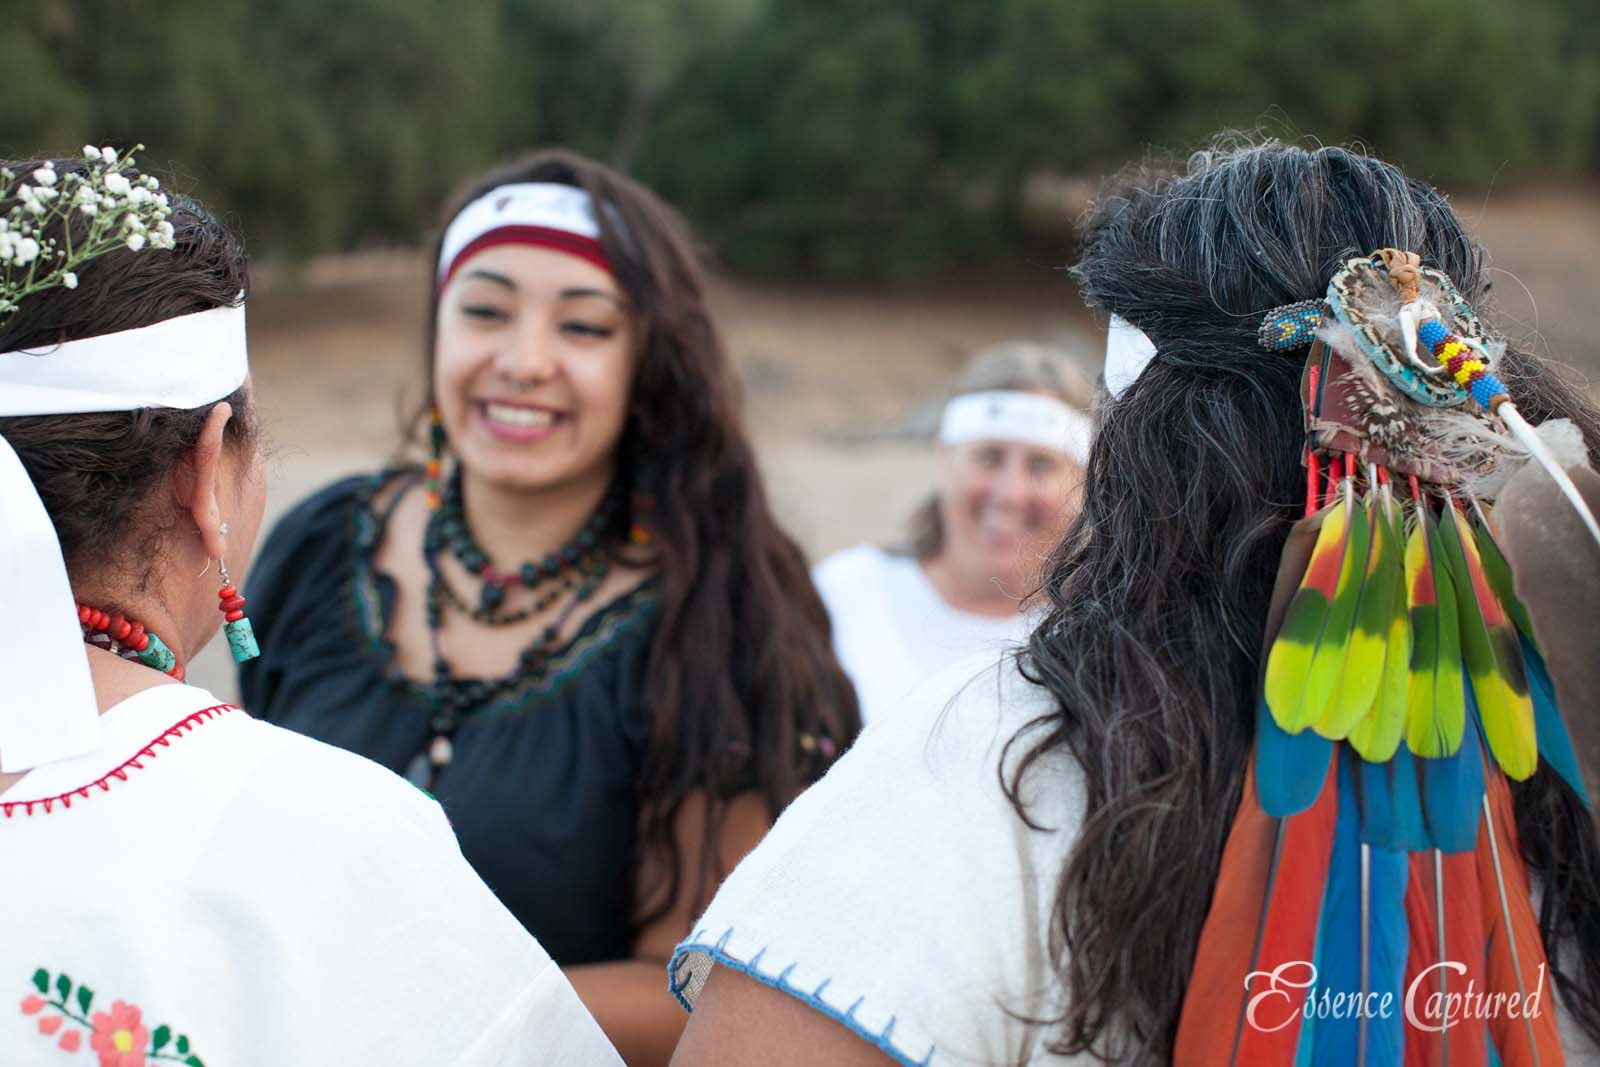 Long Dance 2014 ceremonial dress Mexica sisters feathers in hair